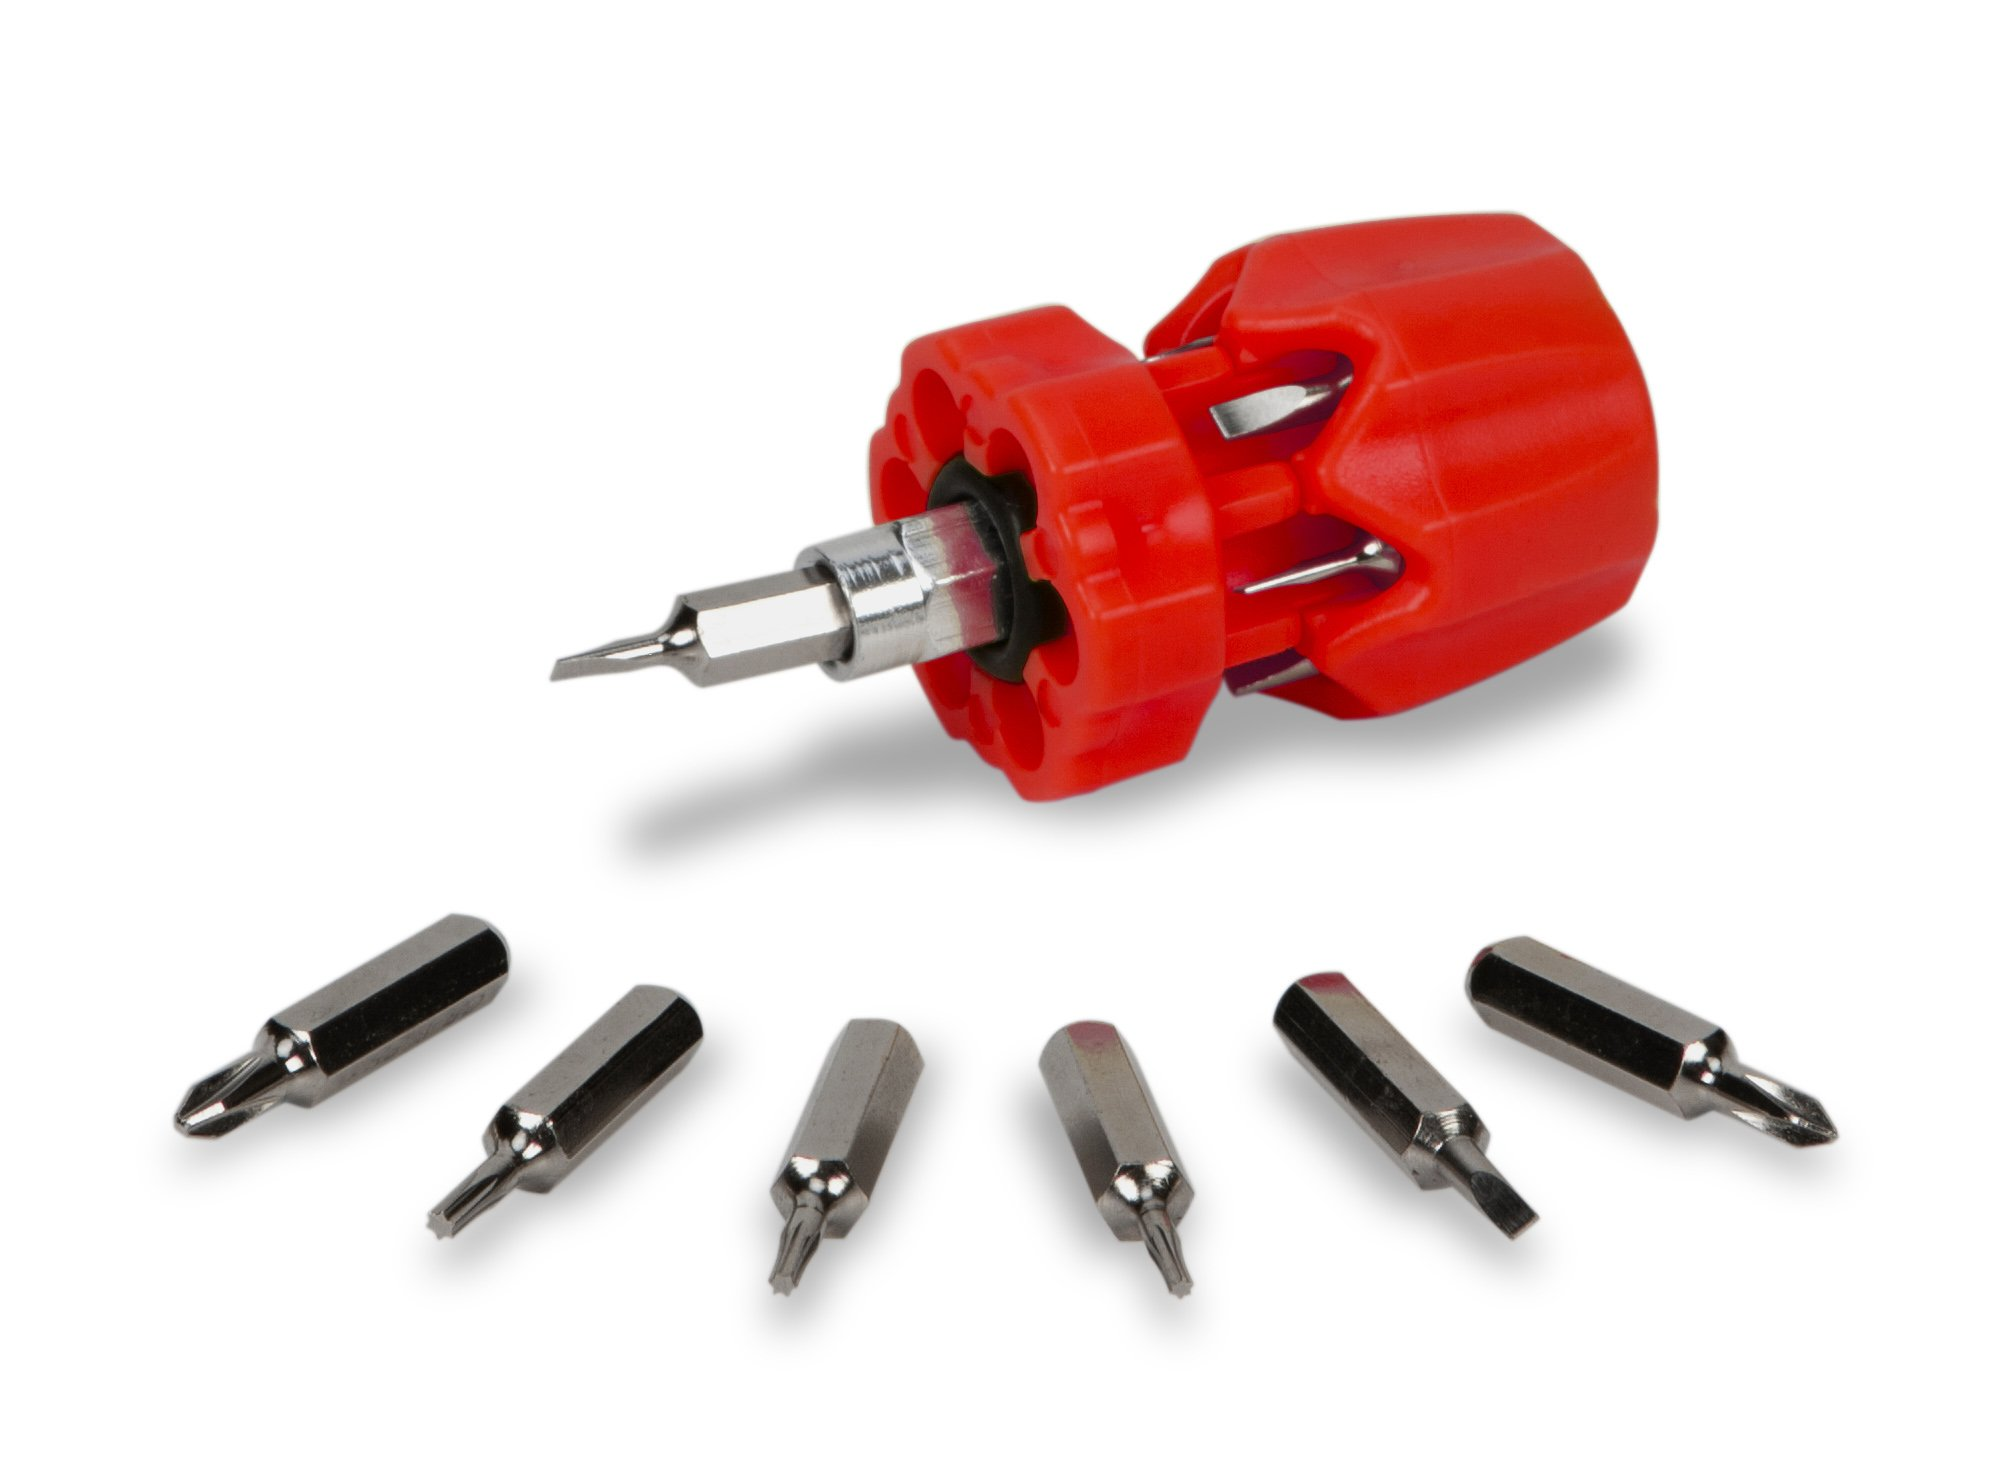 Performance Tool W476 Stubby Precision Screwdriver, 7 Piece (Phillips, Slotted Star Bits)